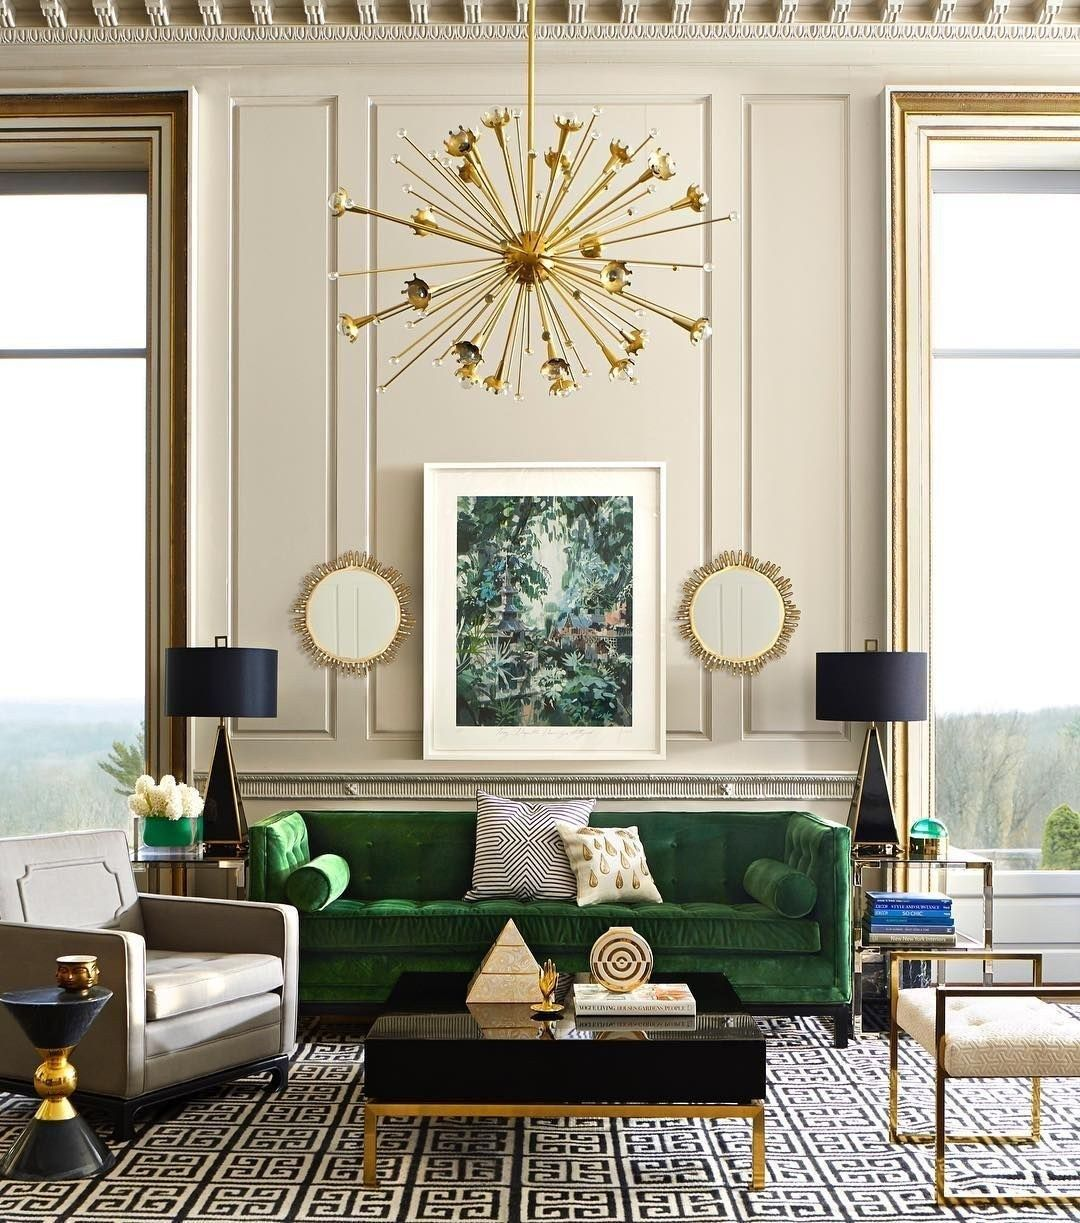 38 GREEN VELVET SOFA DESIGN IDEAS TO MAKEOVER YOUR LIVING ROOM – Page 24 of 38 -…